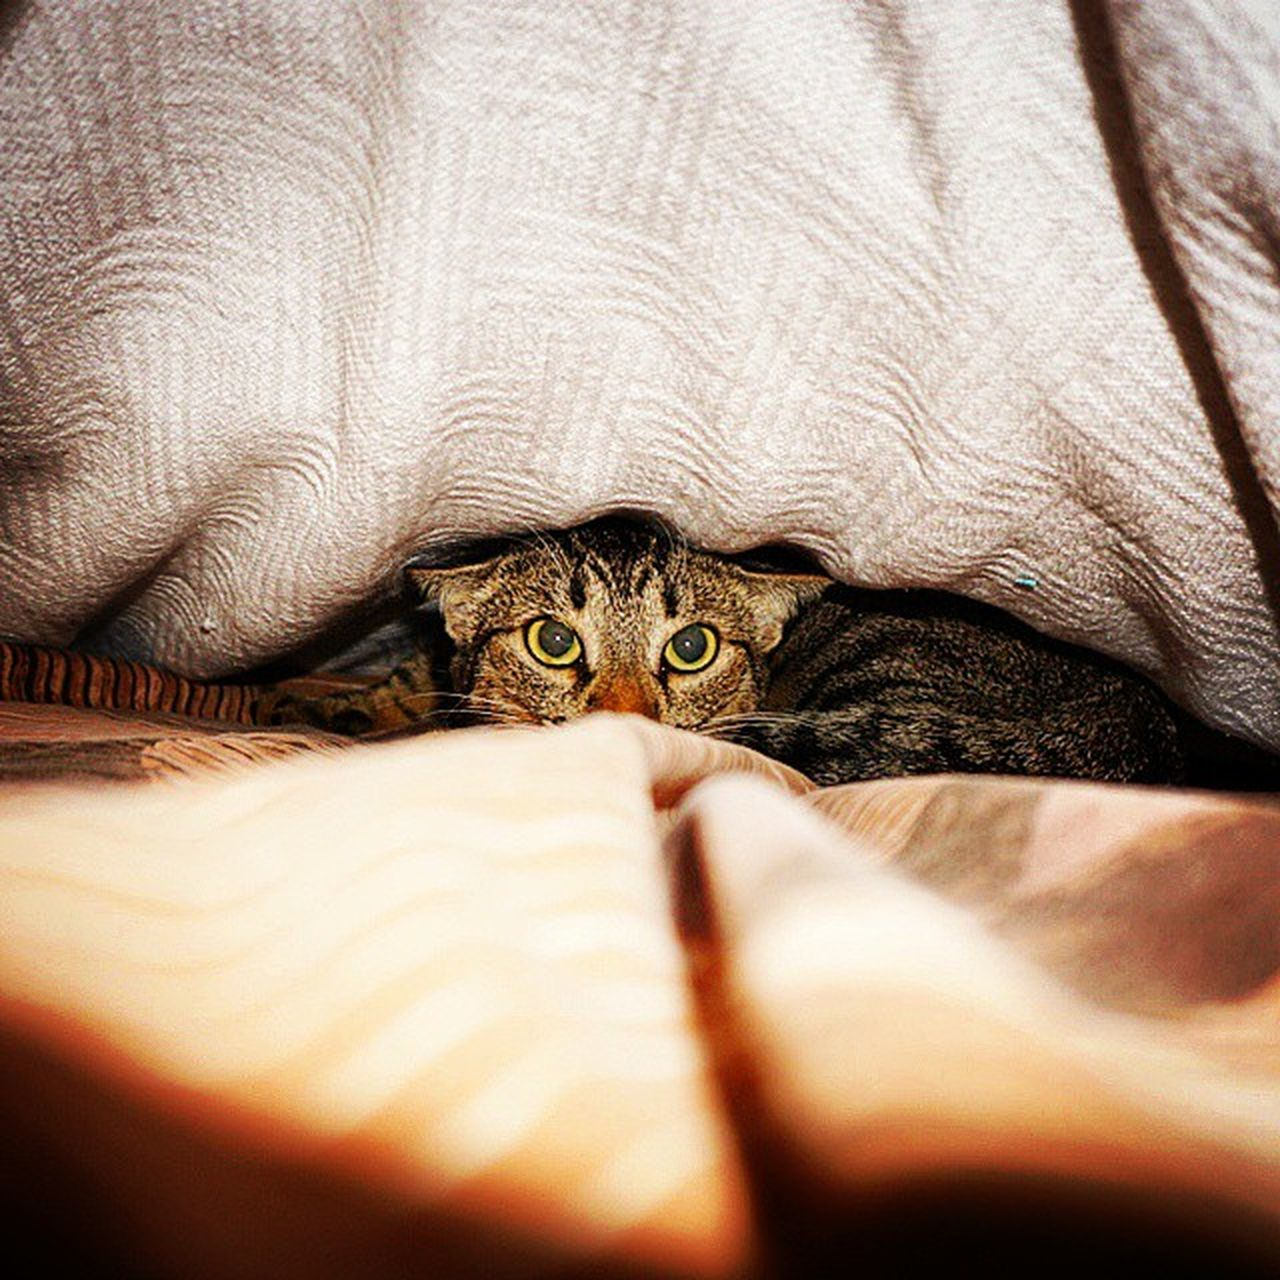 domestic cat, one animal, animal themes, pets, feline, domestic animals, mammal, cat, indoors, bed, hiding, no people, reptile, looking at camera, home interior, portrait, day, close-up, nature, bedroom, under, tortoise shell